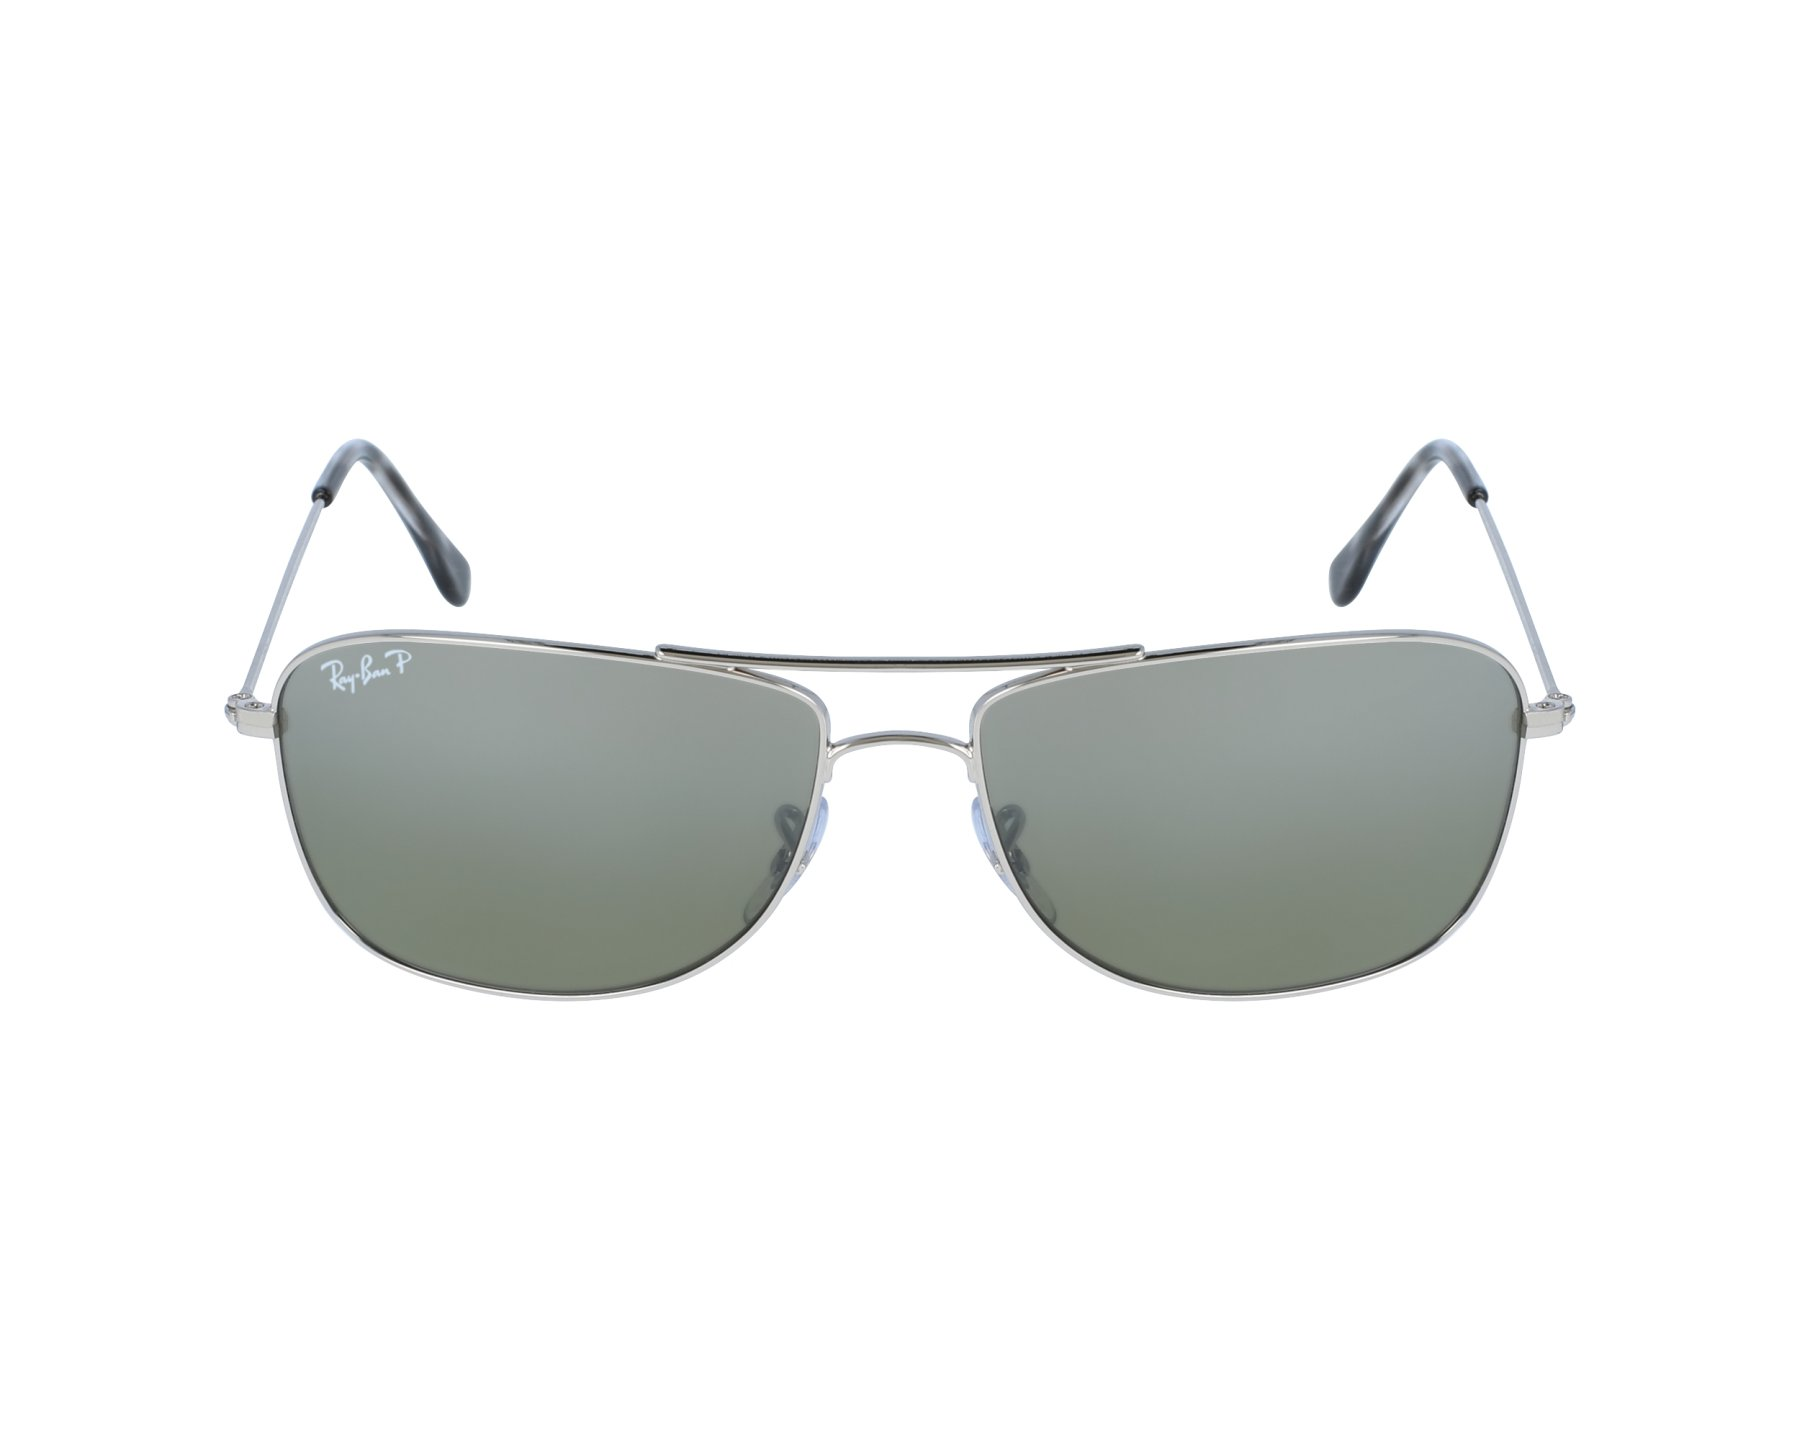 2f9dff1330 thumbnail Sunglasses Ray-Ban rb-3543 003 5J 59-16 Silver profile